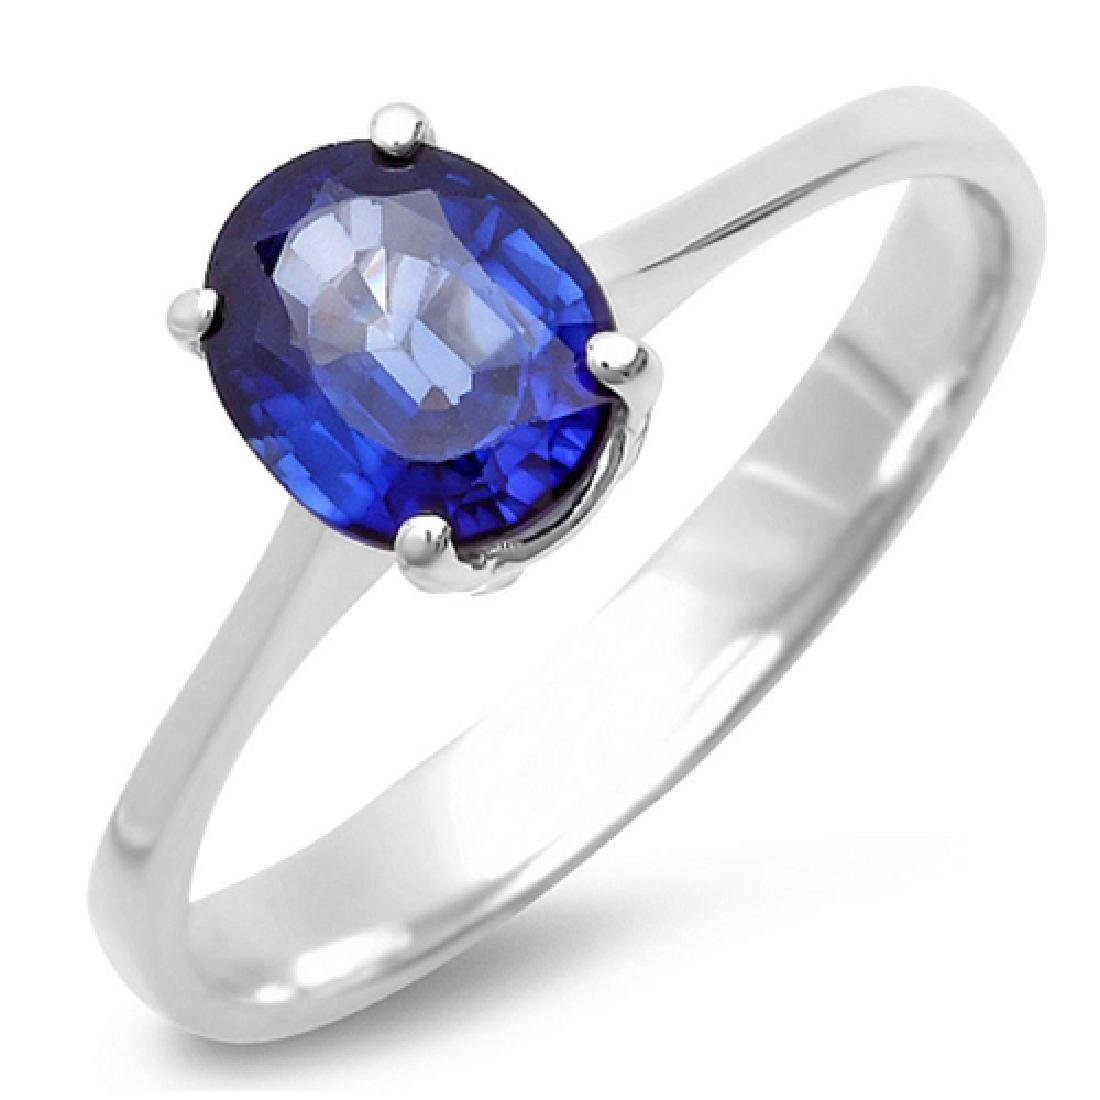 1.20 Carat Natural Sapphire 18K Solid White Gold Ring